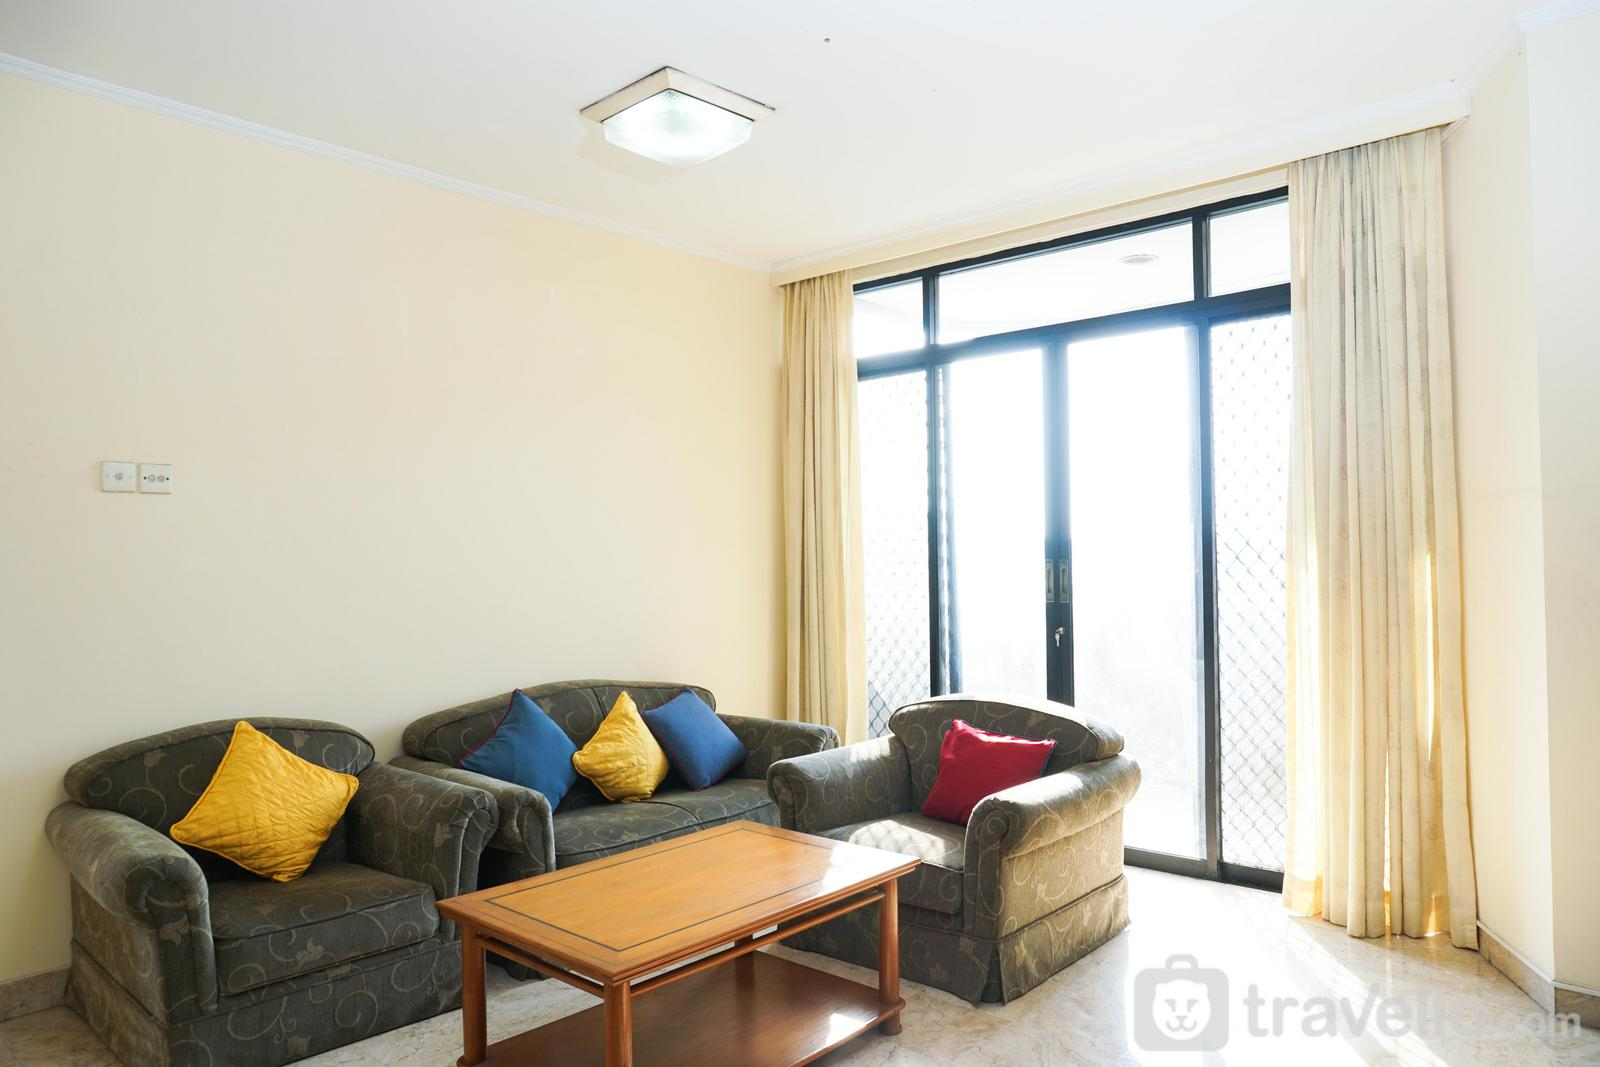 Apartemen Beverly Tower - 2BR with Pool View at Beverly Tower Apartment By Travelio